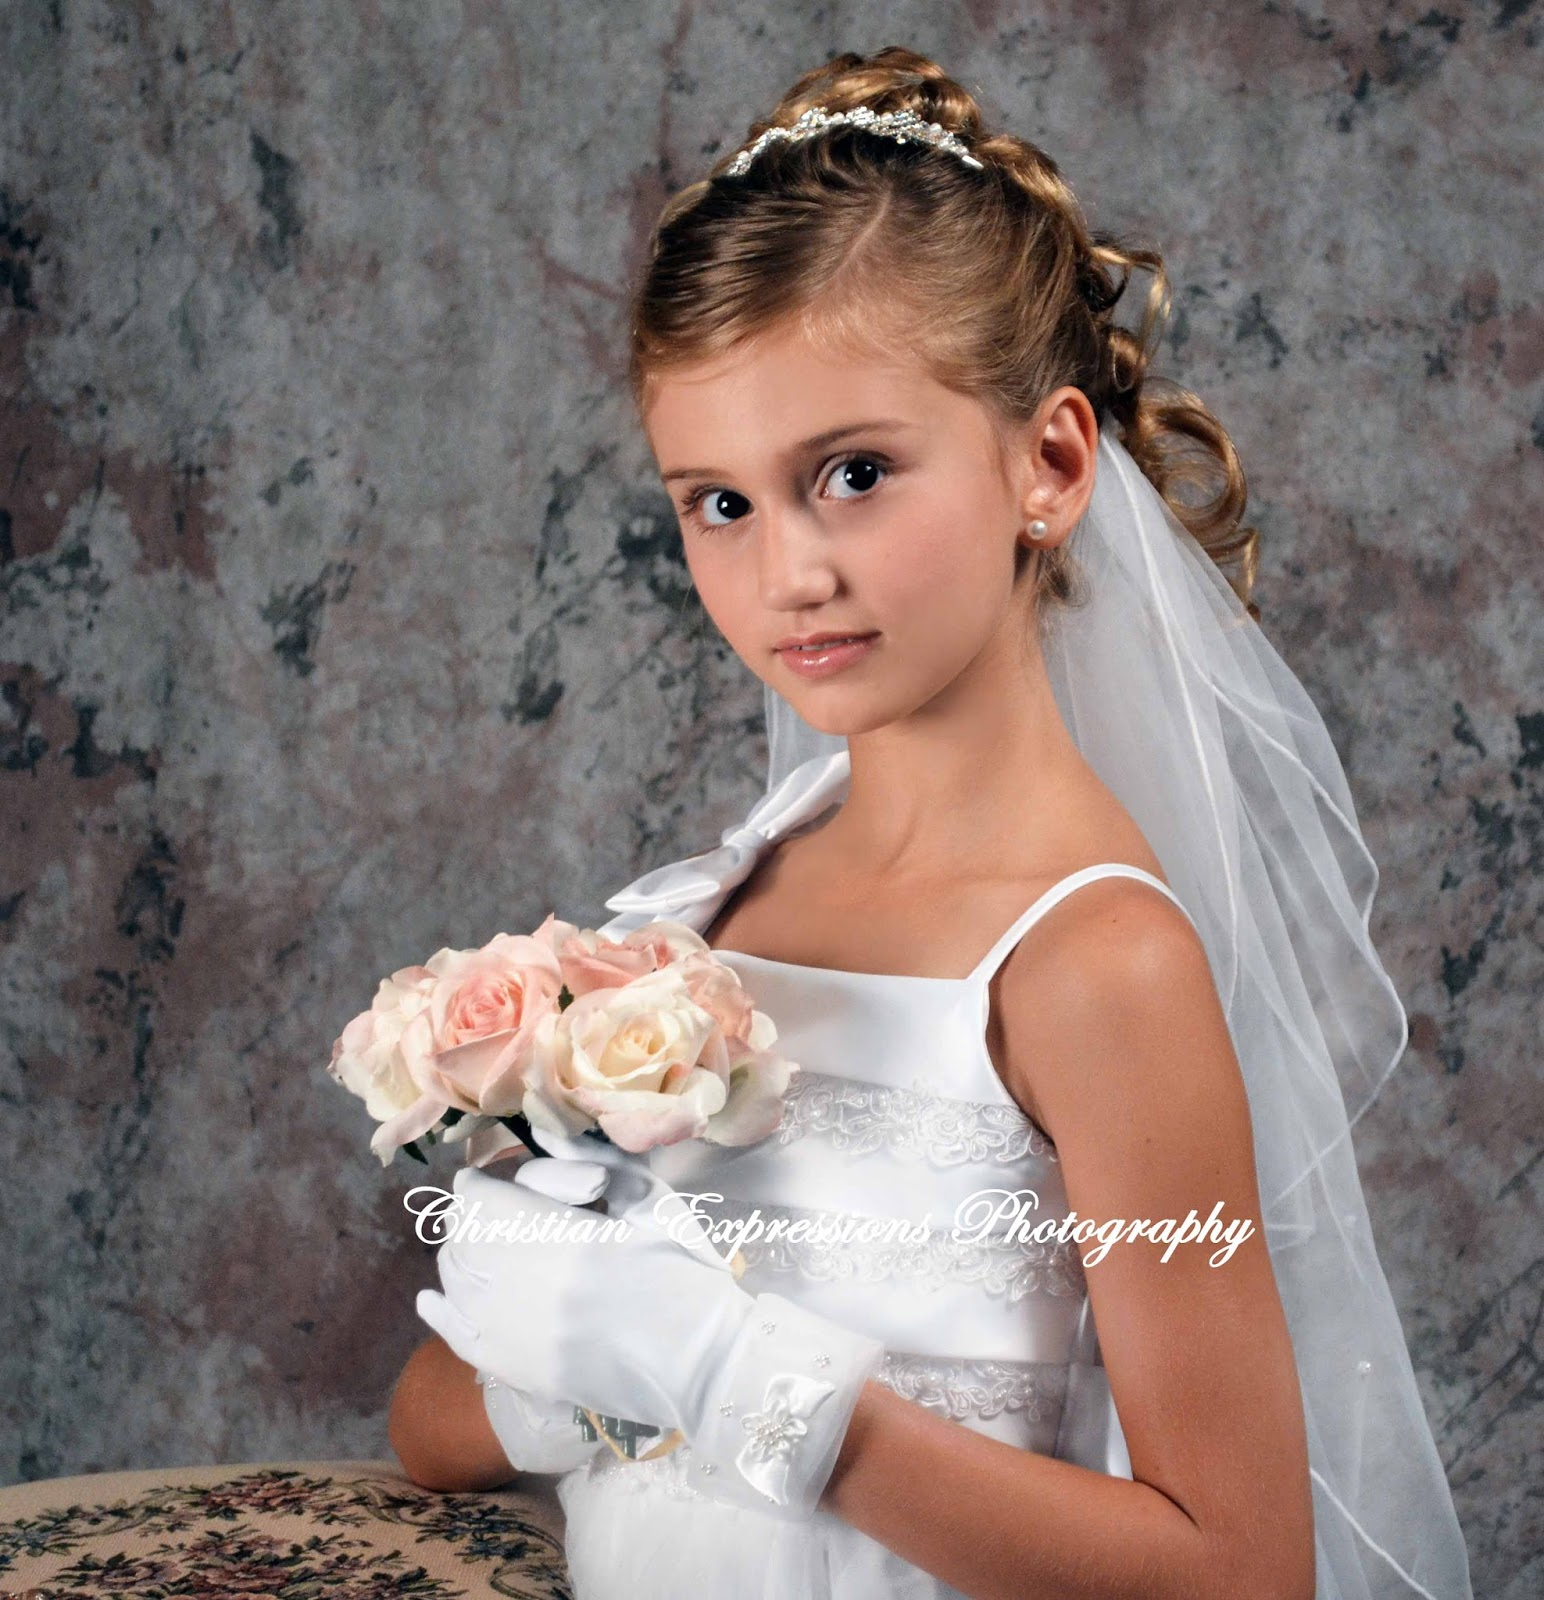 first-communion-dresses-1.jpg